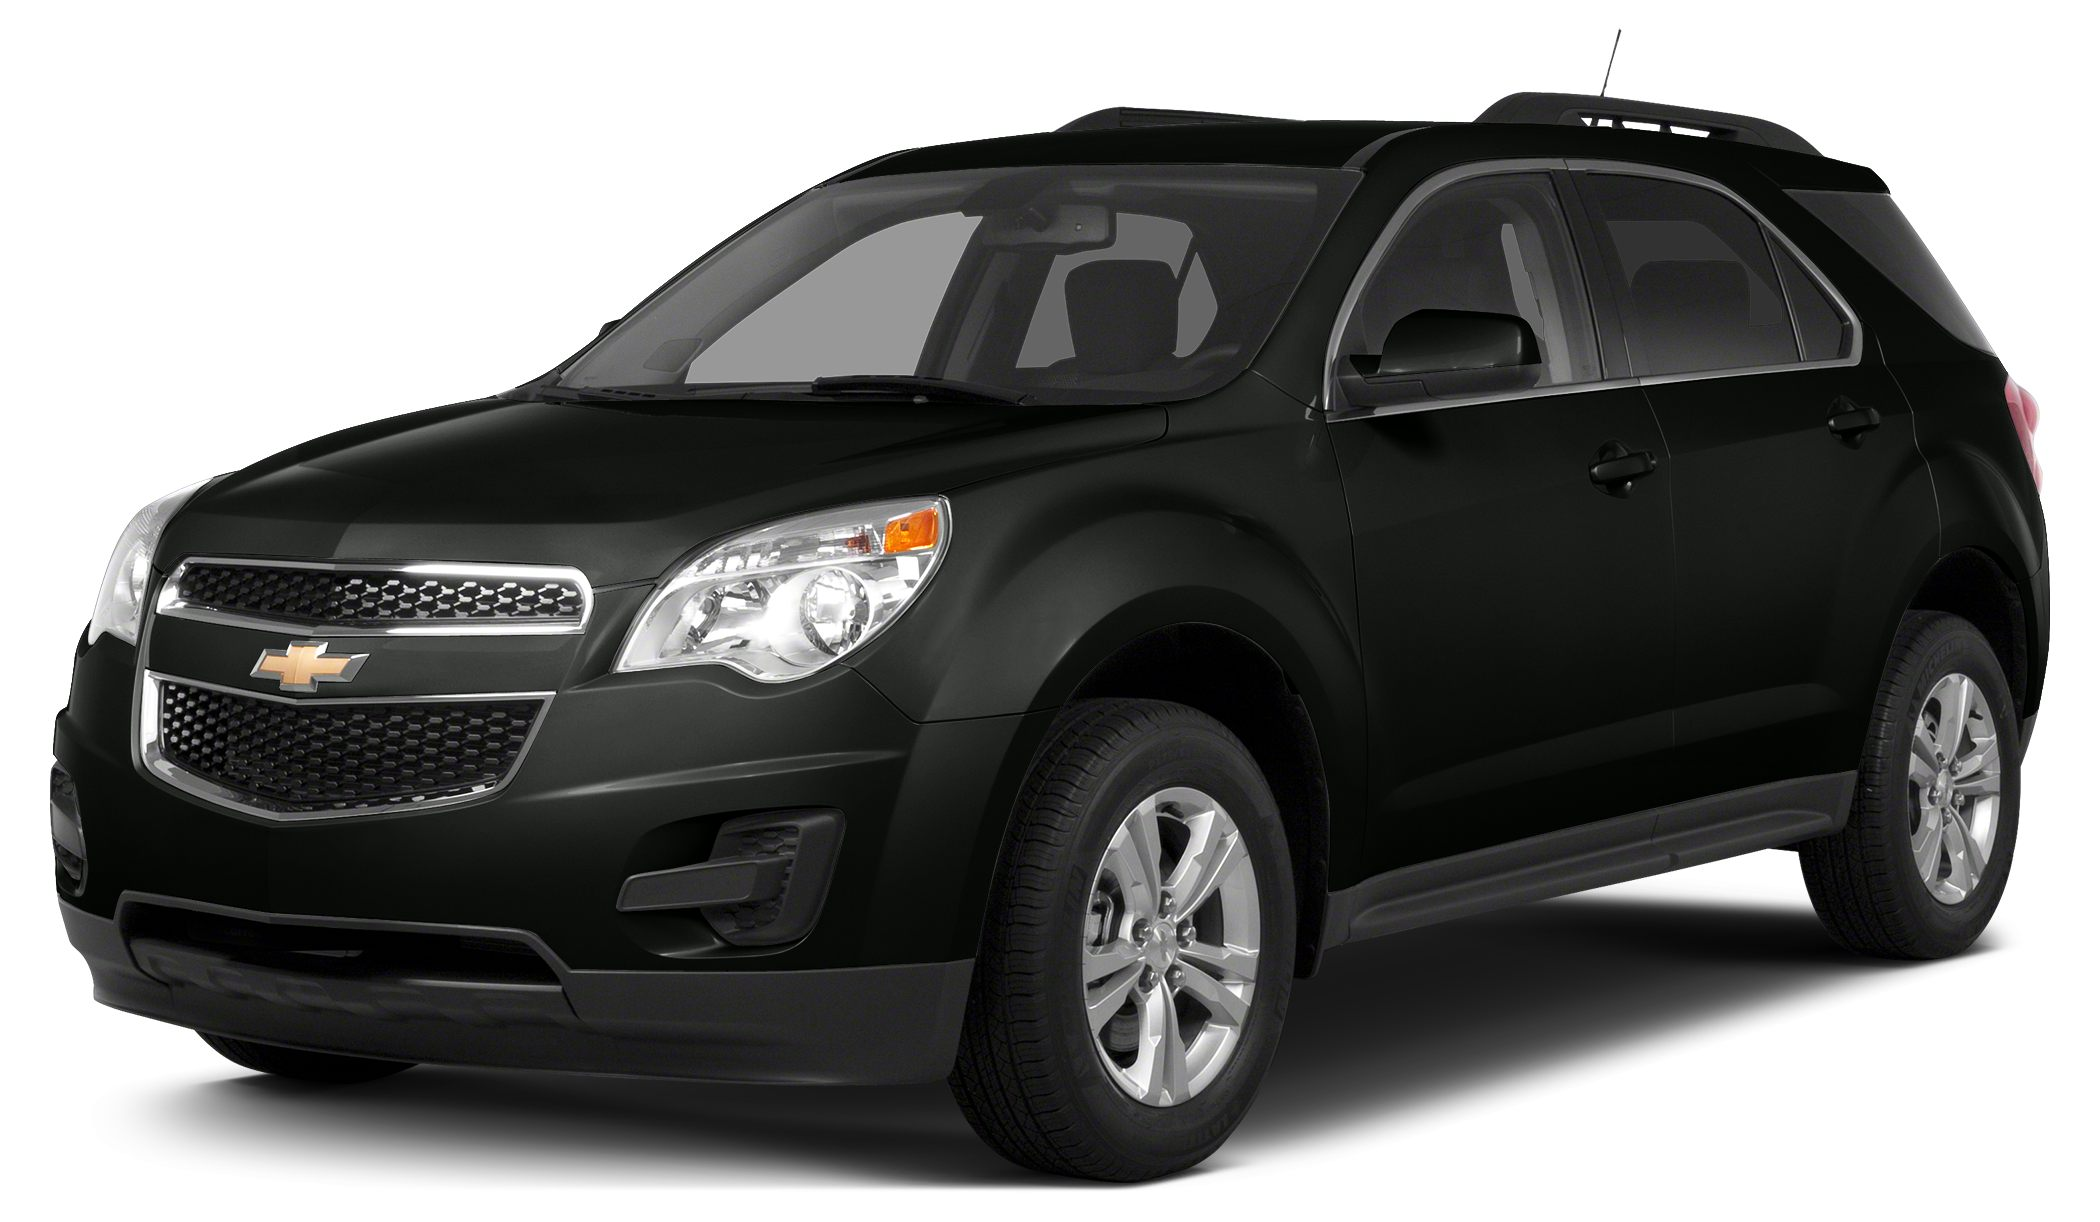 2015 Chevrolet Equinox 1LT Driver Convenience Package 8-Way Power Driver Seat Adjuster and Remote